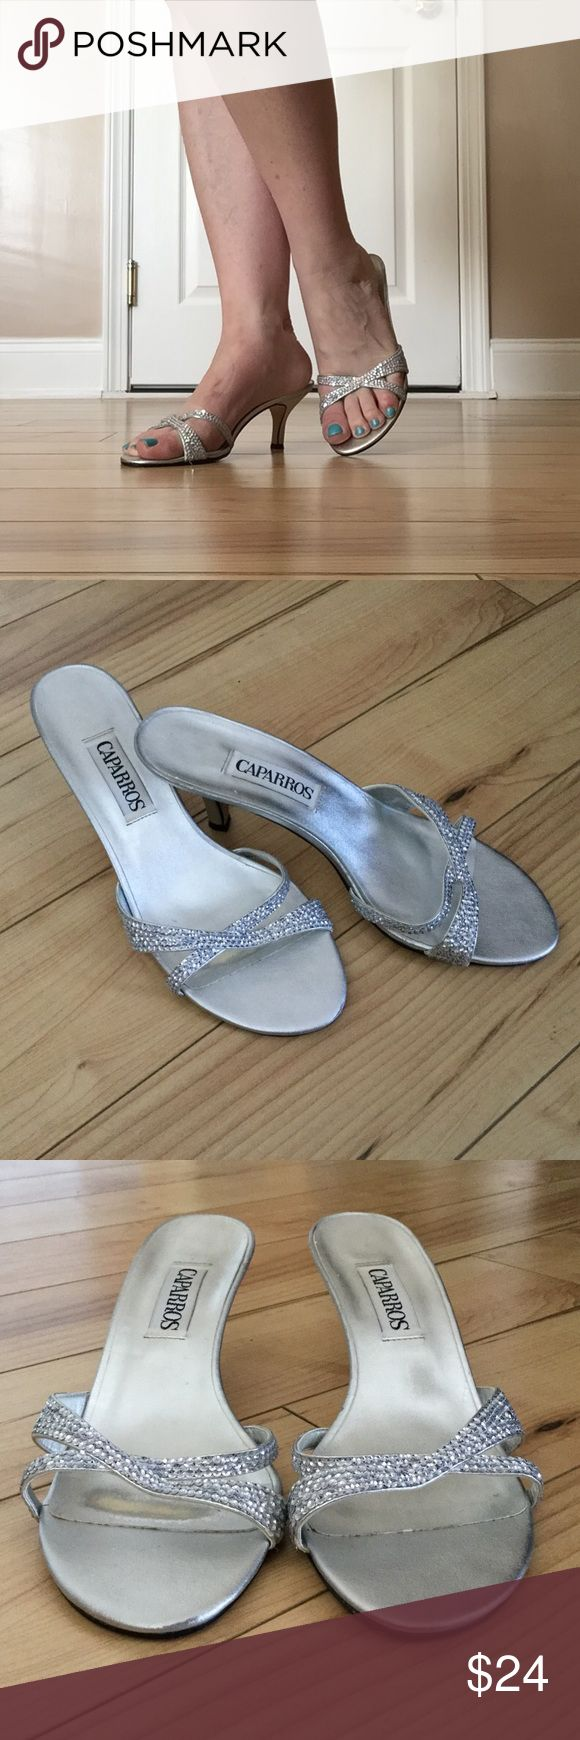 """Silver Sparkly CAPARROS Kitten Heel Dress Sandals! Worn once to a wedding, these comfortable, slip on, 2-1/2"""" heel dress shoes are perfect for any special occasion, party or dance. They are in great pre-loved condition with some sign of wear but a lot of life left in them . Caparros Shoes Heels"""